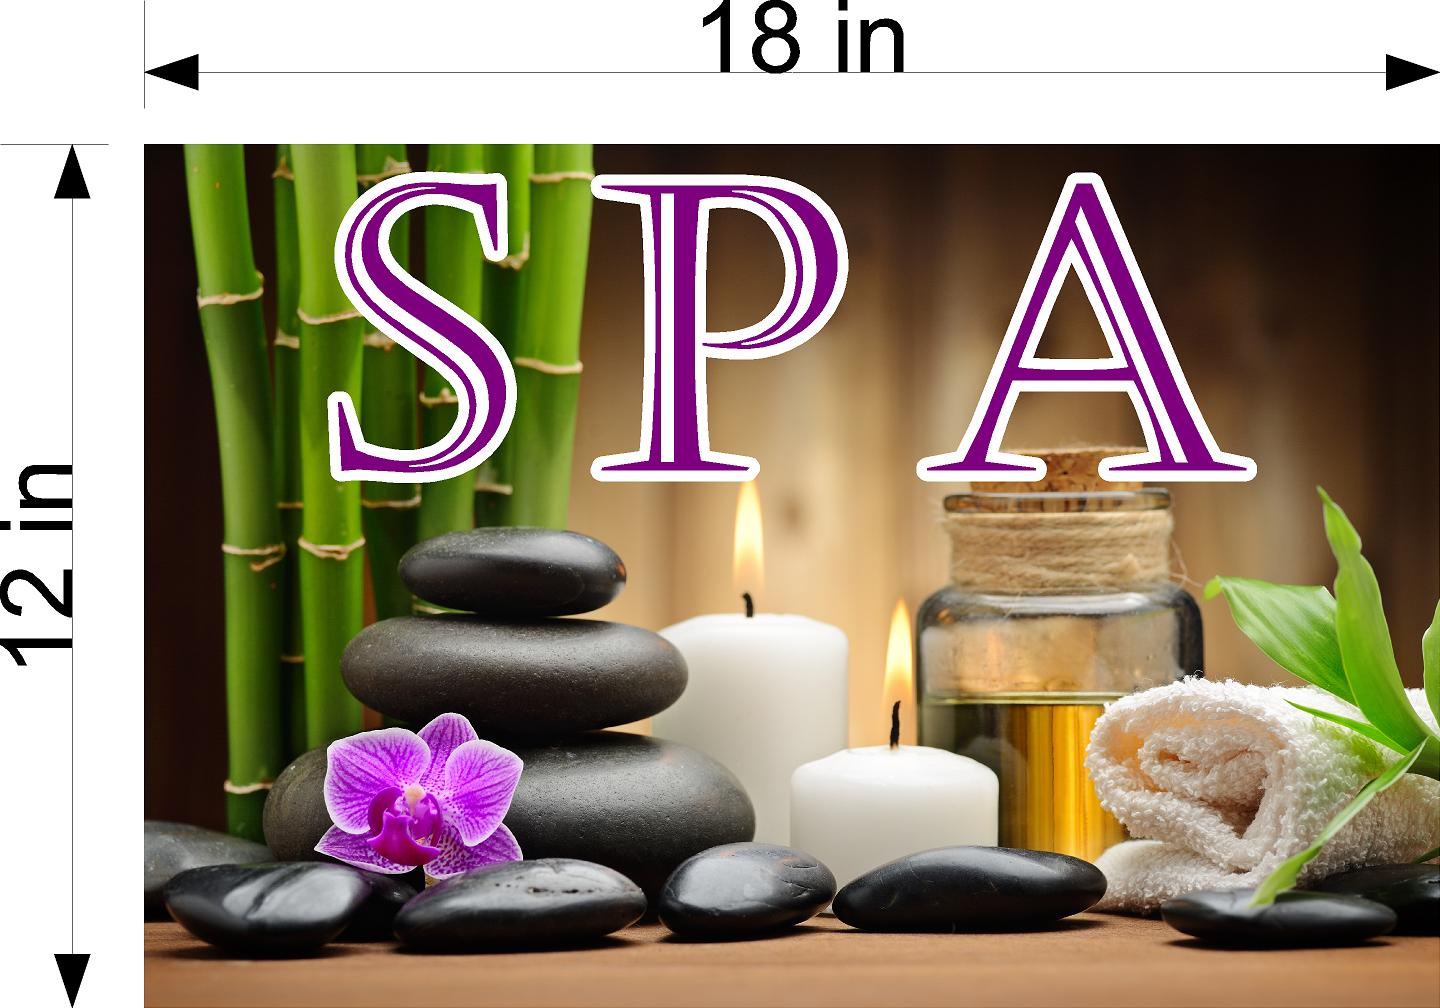 Spa 10 Wallpaper Poster Decal with Adhesive Backing Wall Sticker Decor Indoors Interior Sign Horizontal